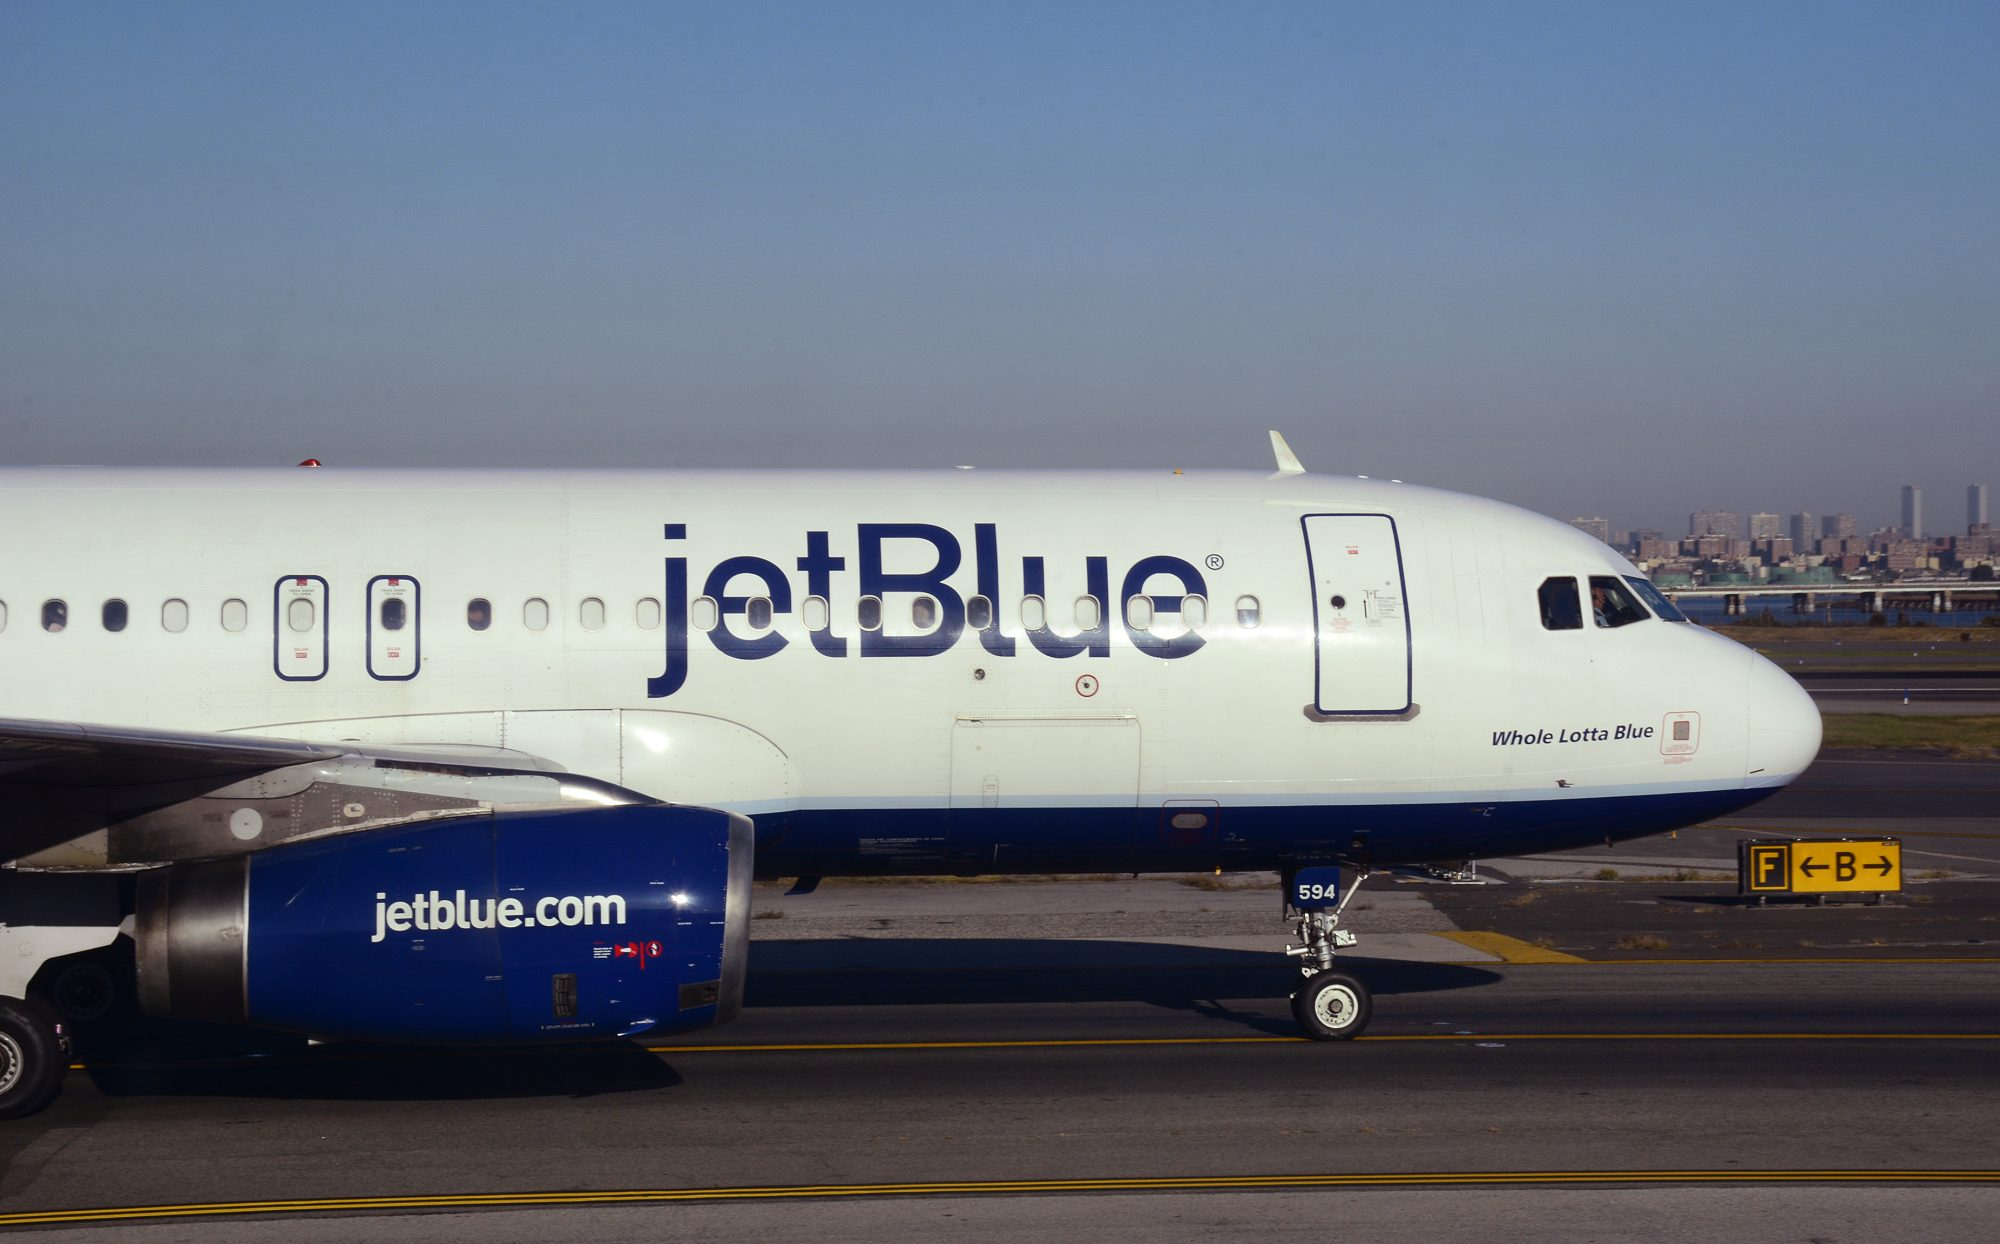 jetblue-woman-drunk.jpg